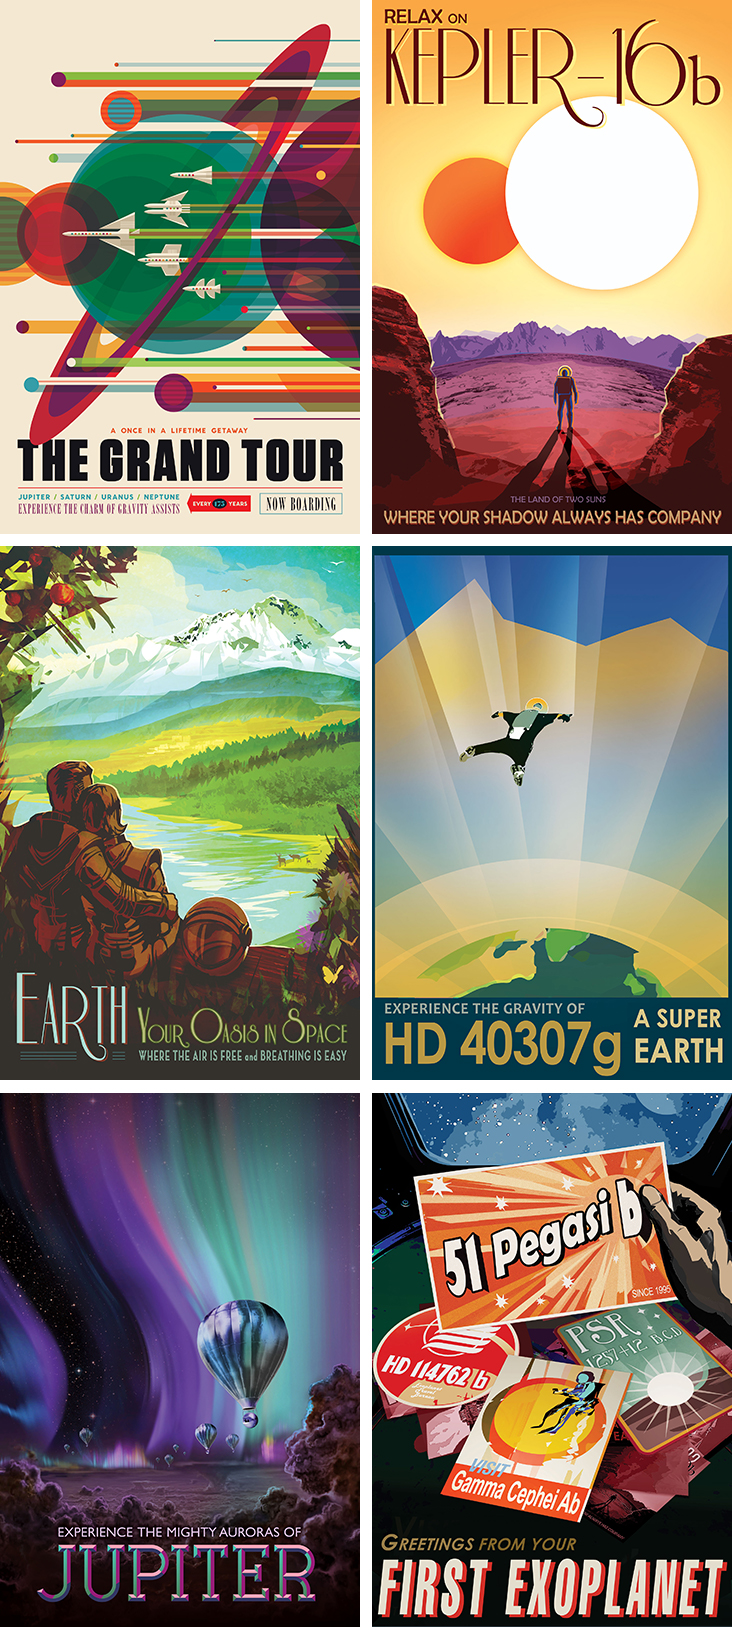 ikadia_articles_les-affiches-retro-futuristes-de-la-nasa-photo1